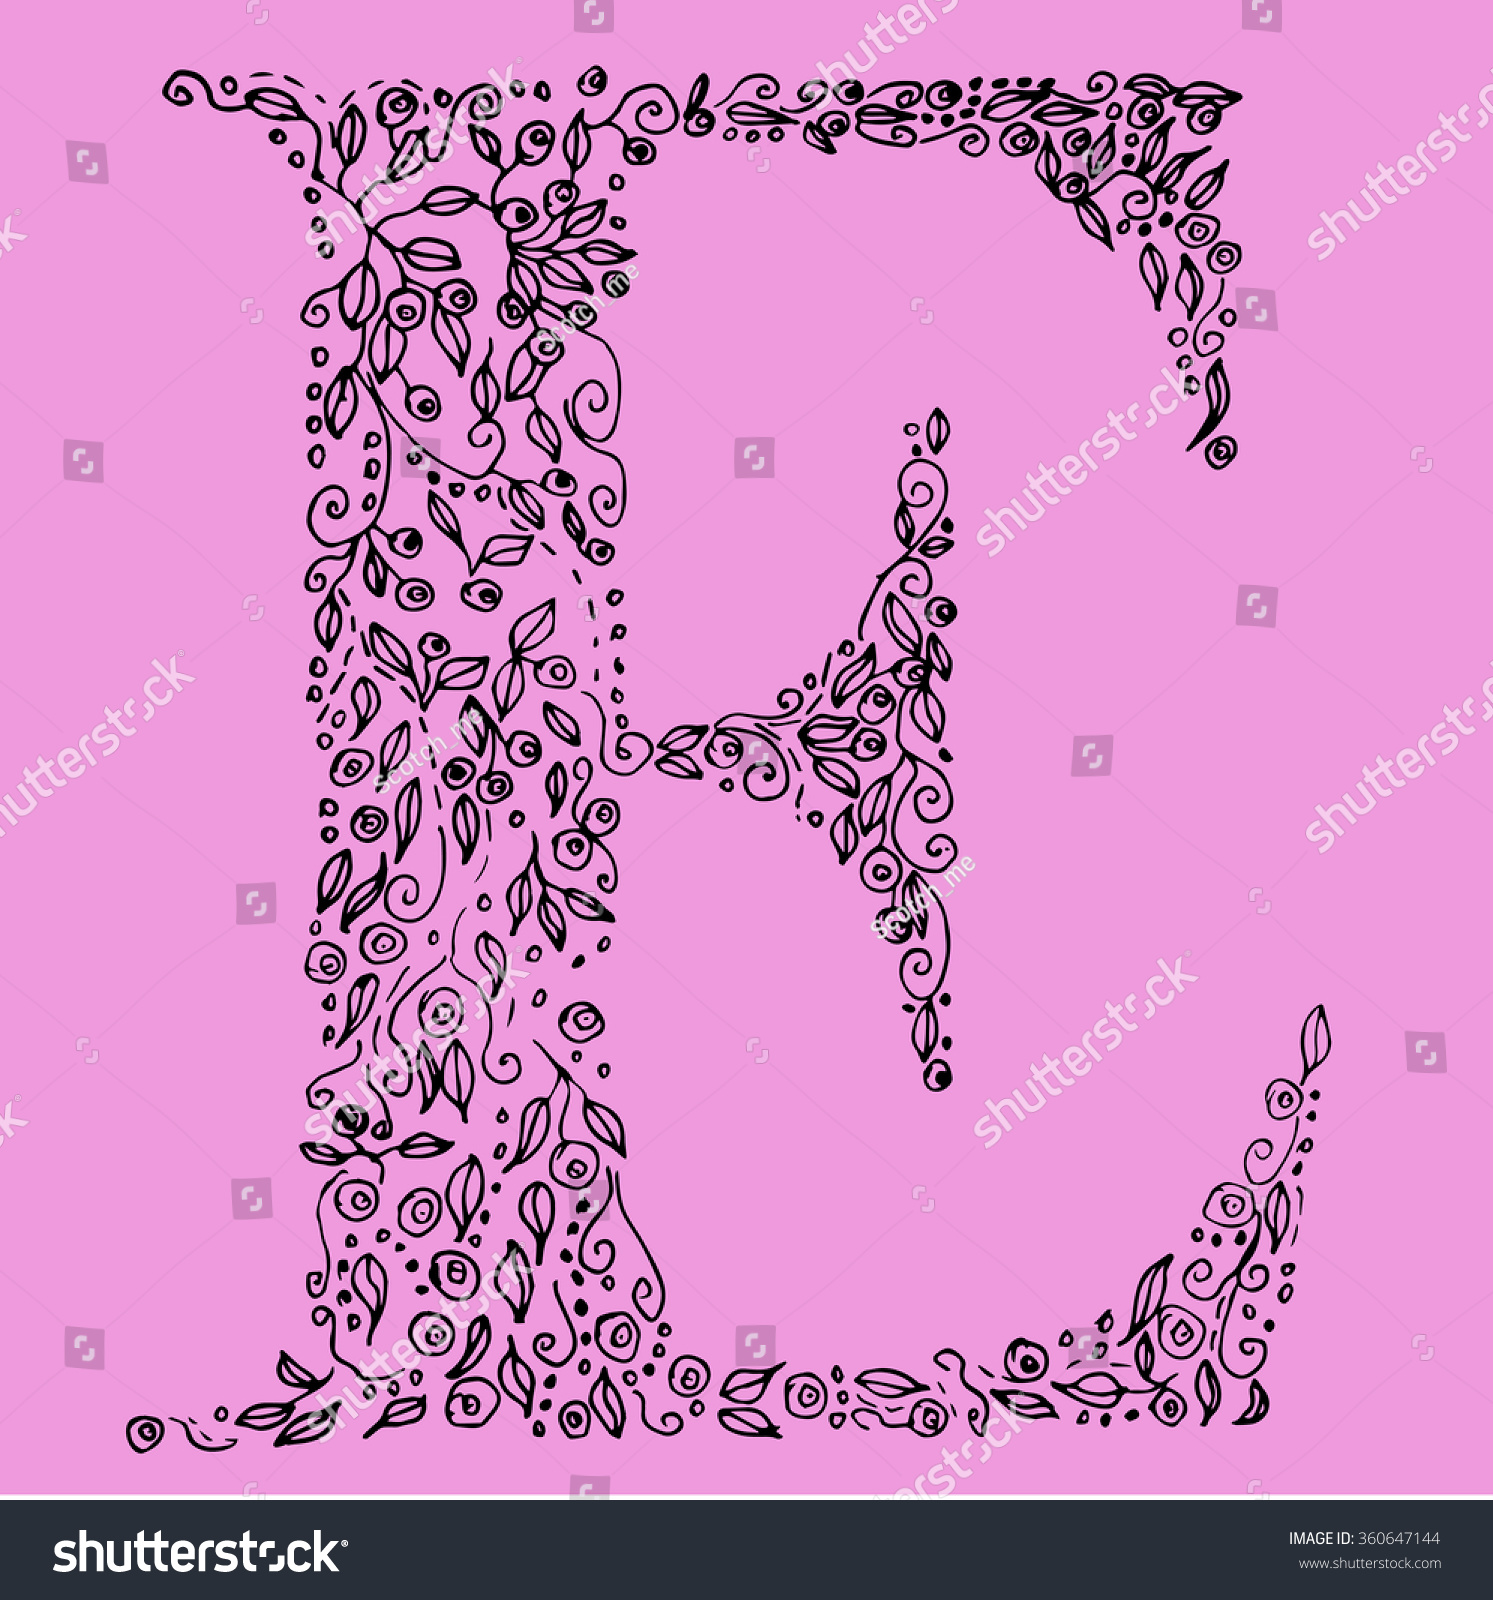 Flower Type Letter E Hand Drawn Stock Vector (Royalty Free ...